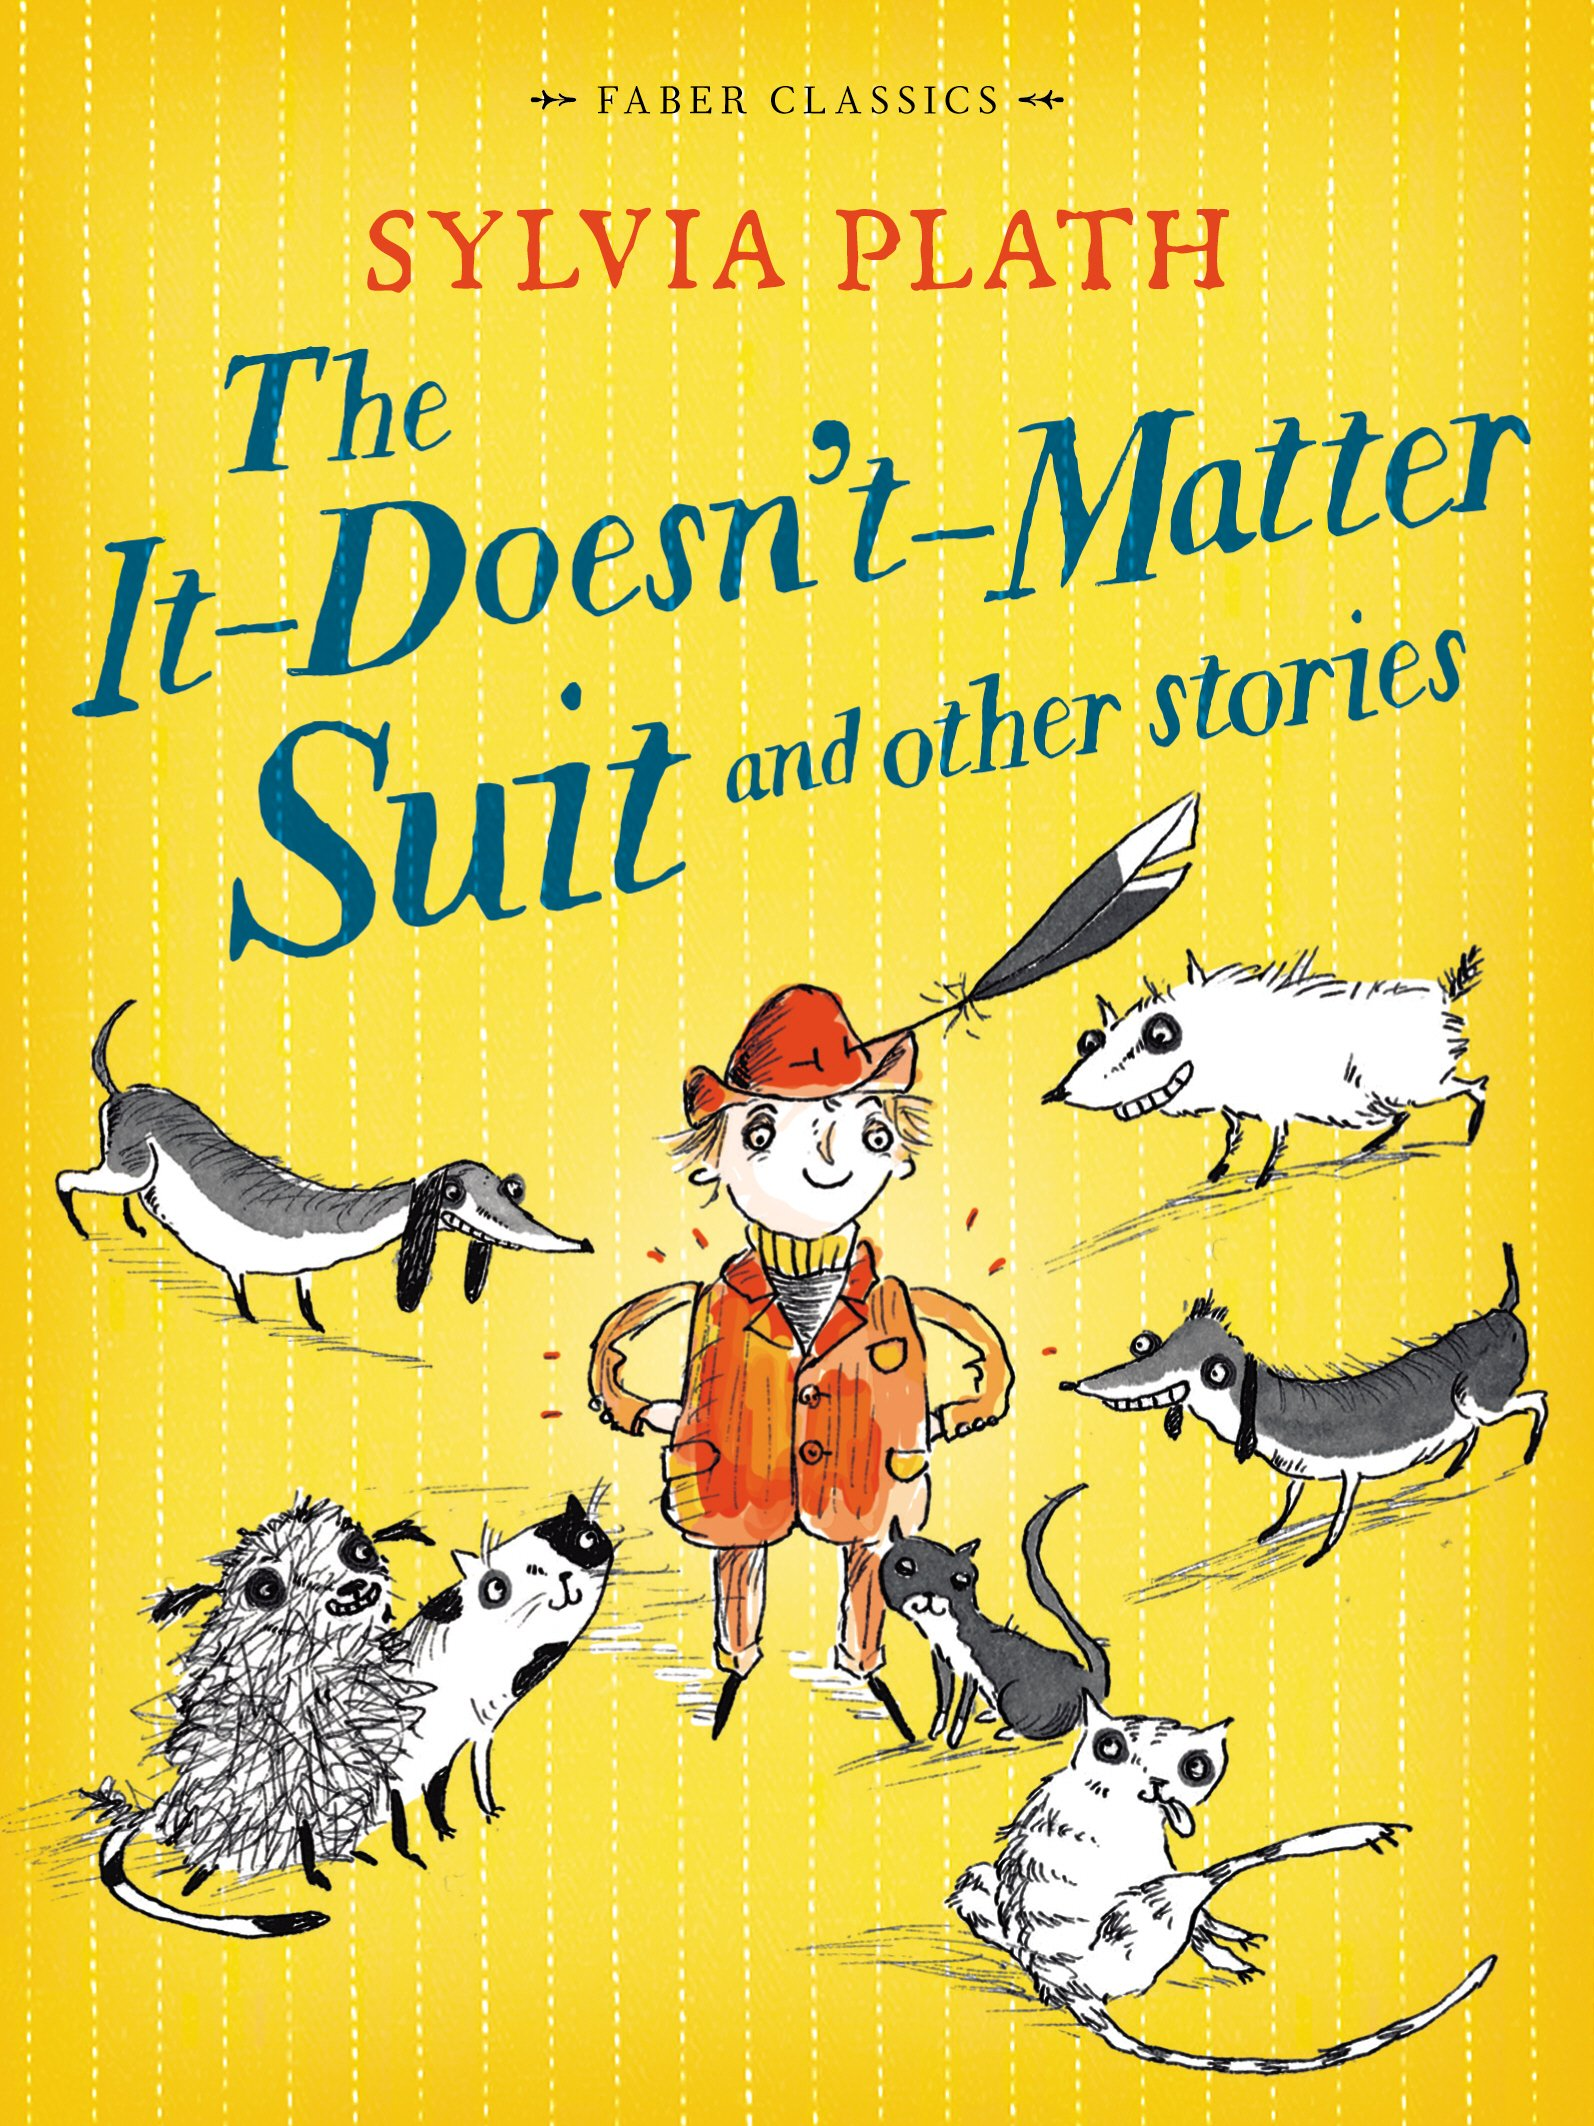 Buy The It Doesn't Matter Suit (Faber Children's Classics) Book Online at  Low Prices in India | The It Doesn't Matter Suit (Faber Children's  Classics) Reviews & Ratings - Amazon.in